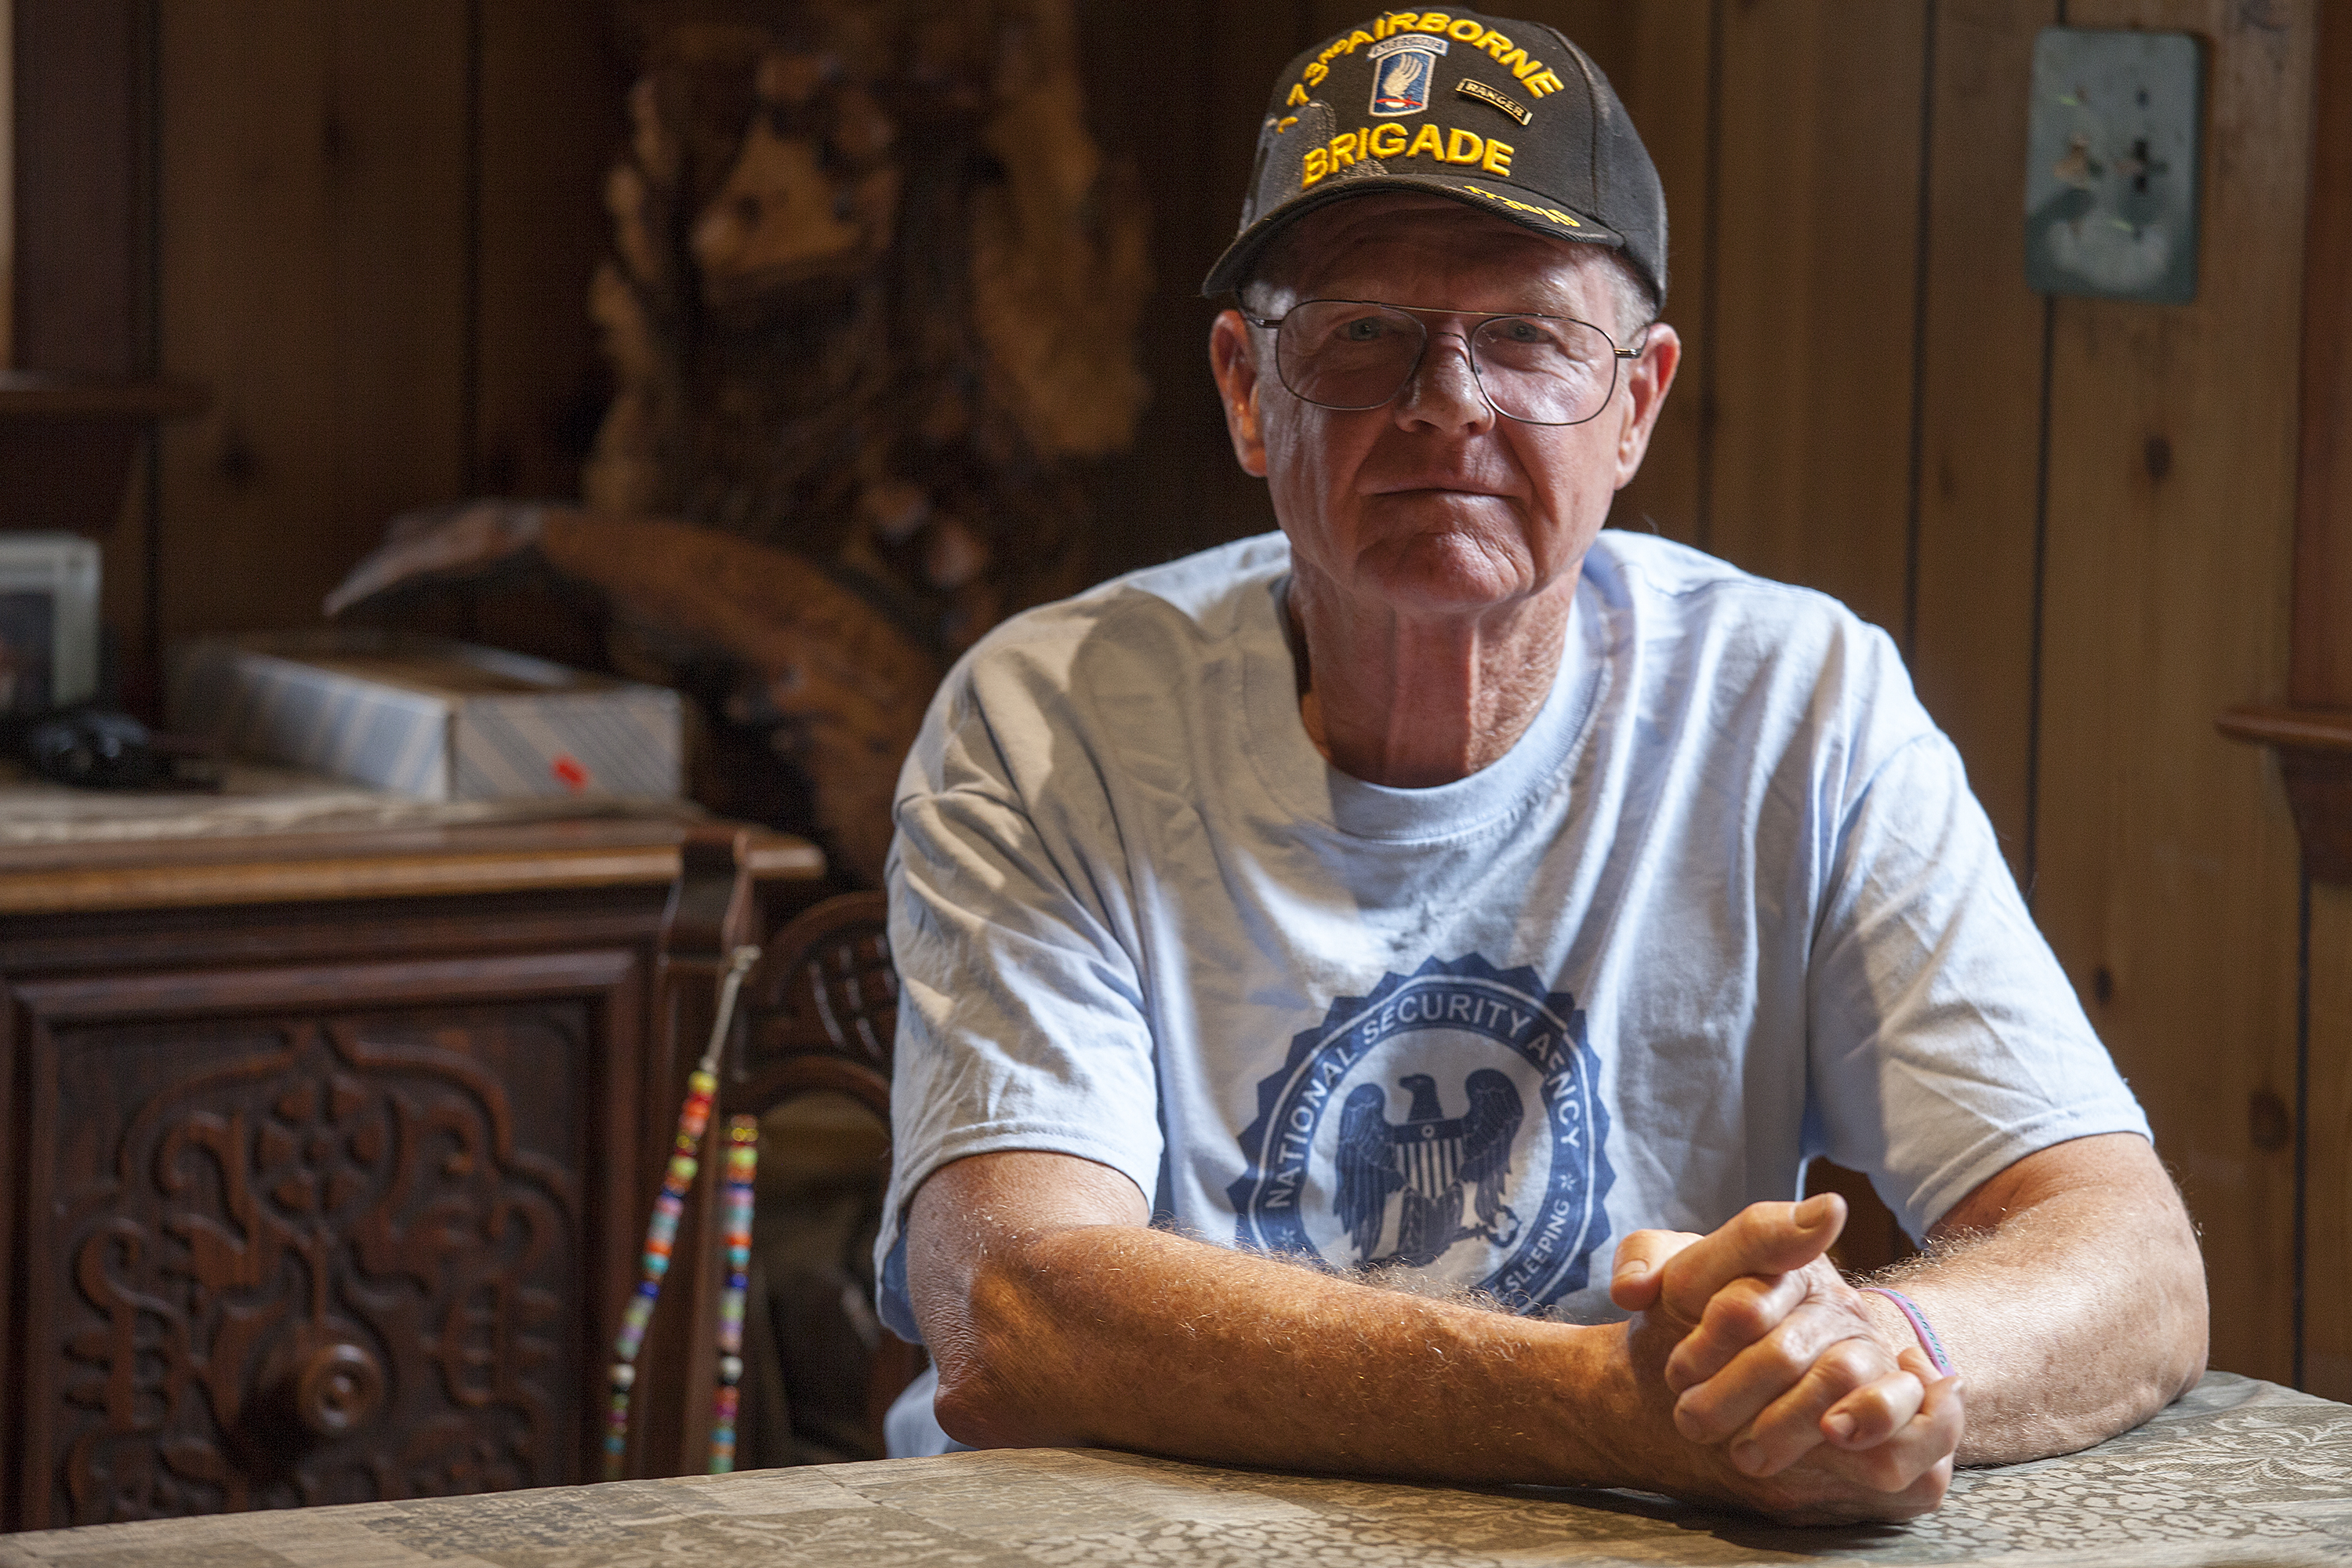 John Suter sits in his dining room in Chugiak. His appeal with the Alaska Ombudsman's office has been ongoing for more than a decade. (Photo by Rashah McChesney, KTOO - Juneau)